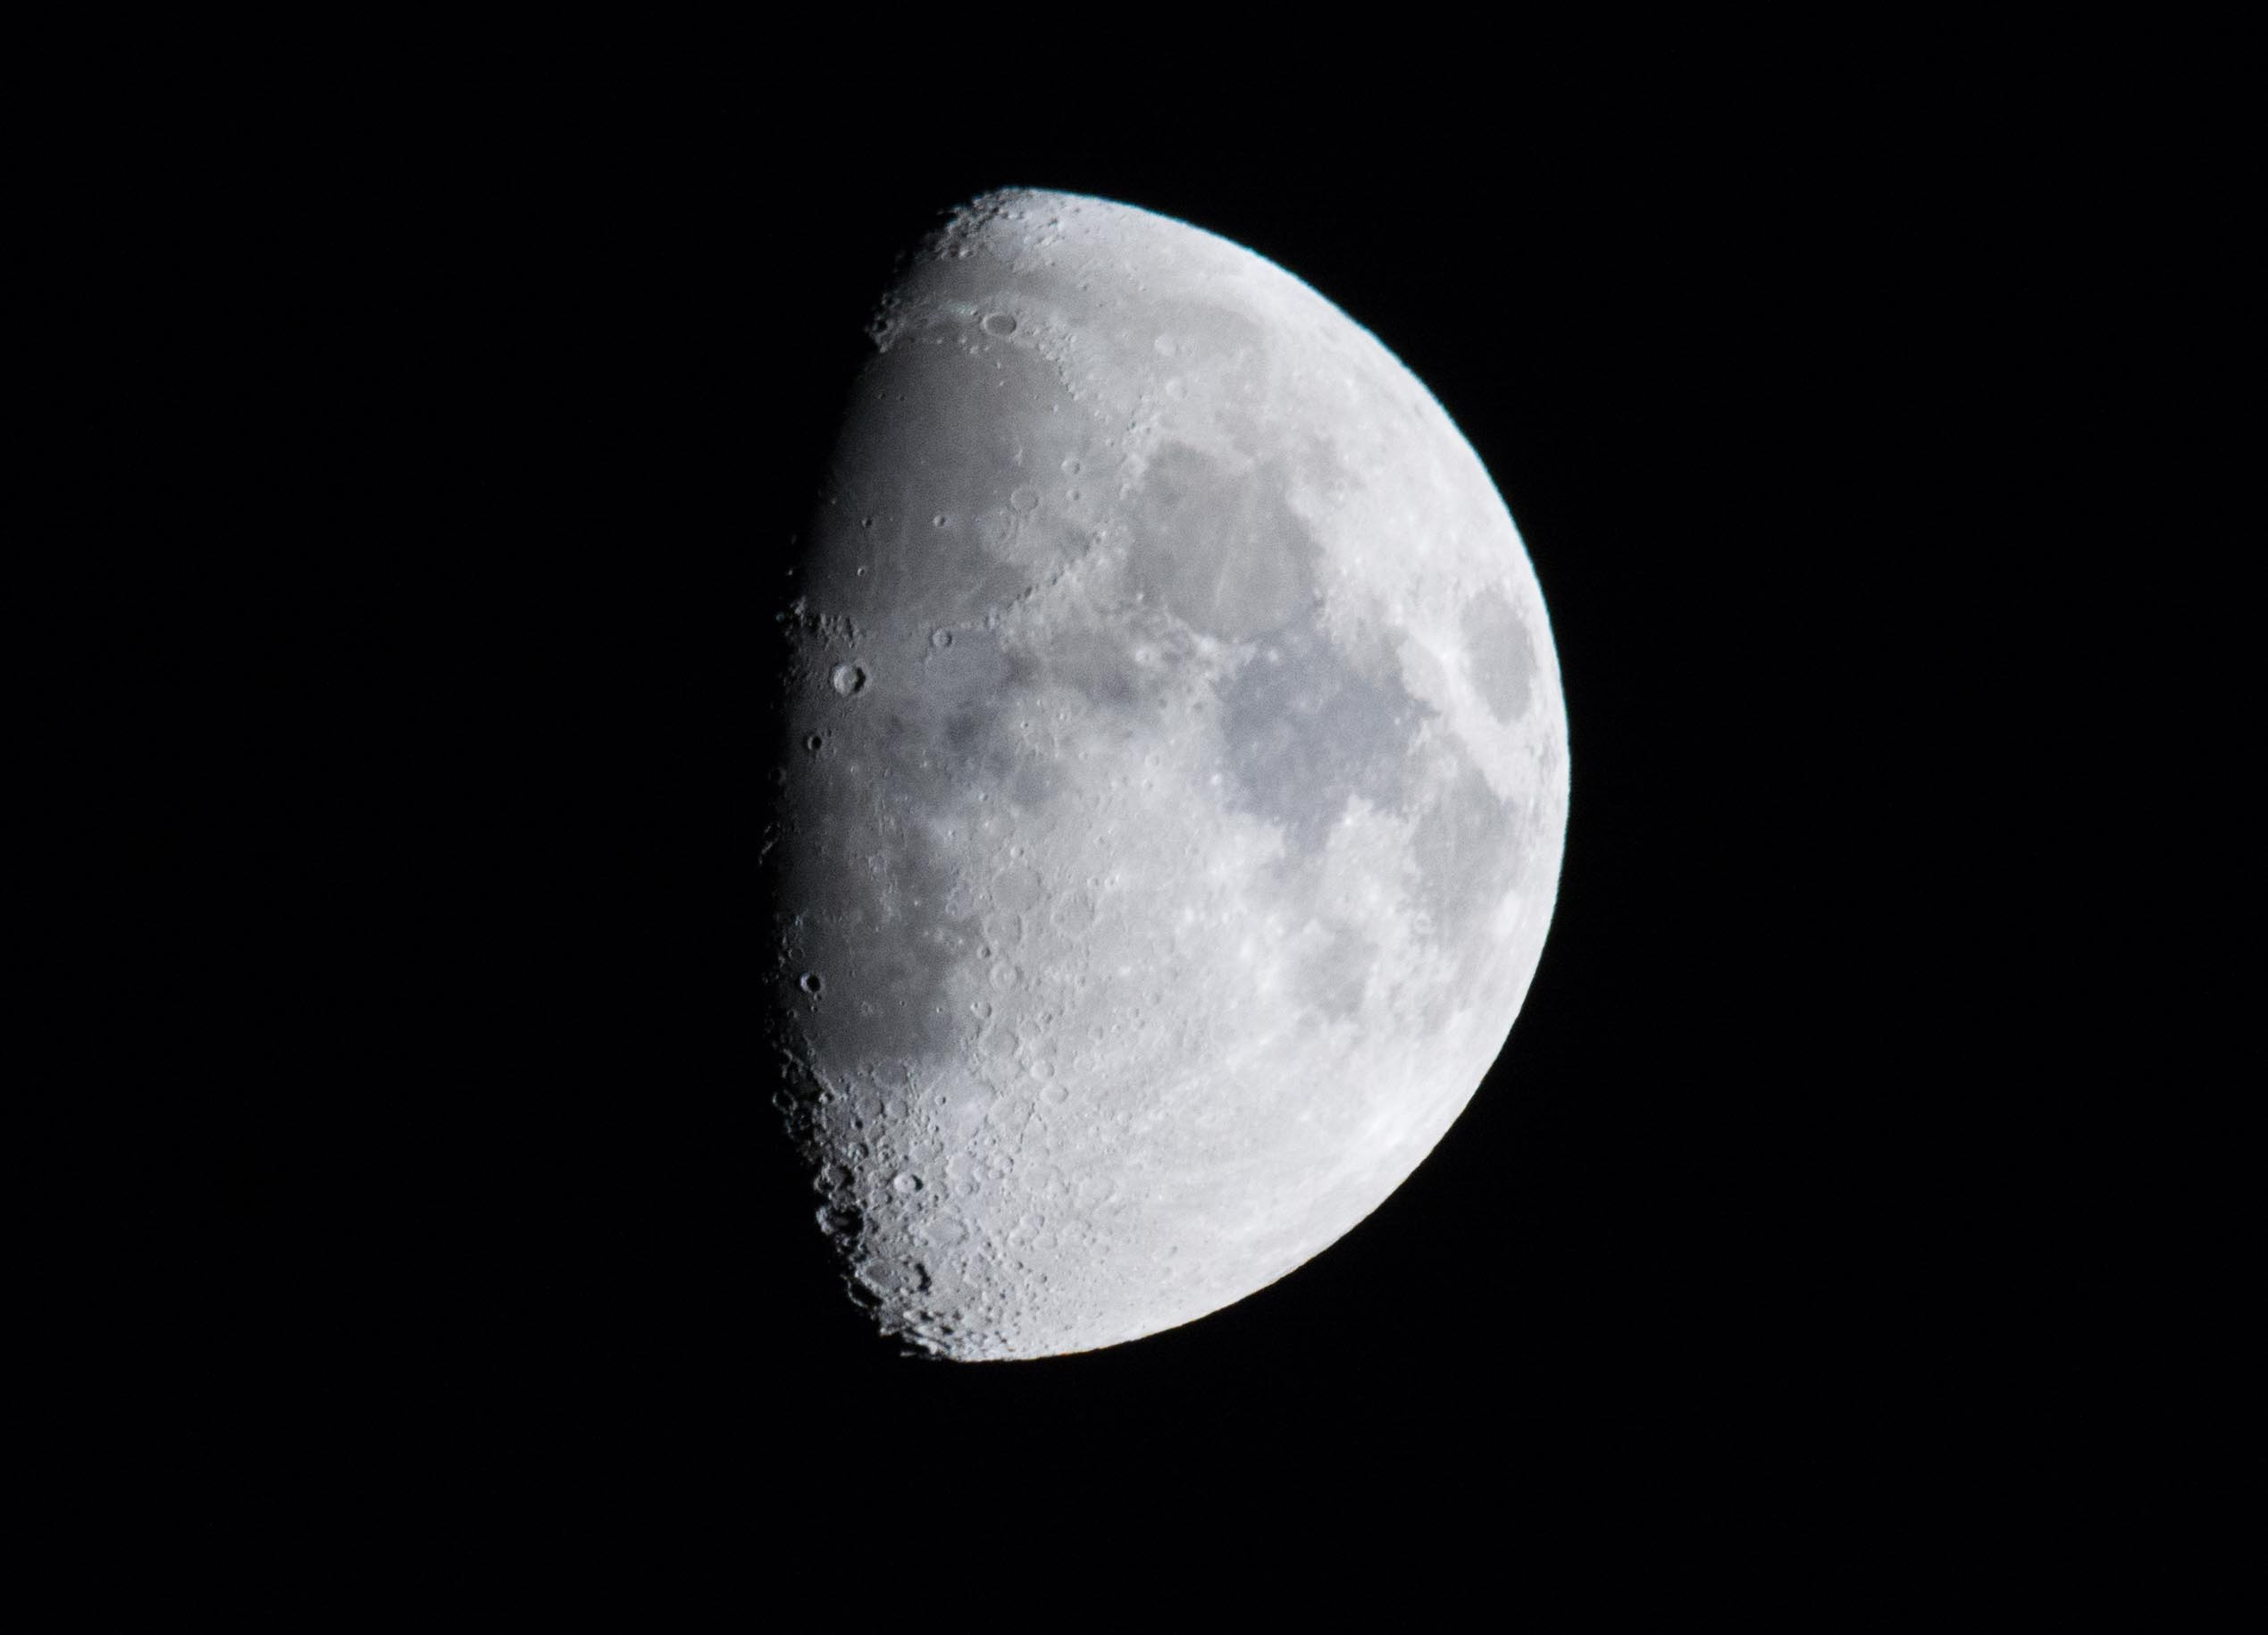 My first moon shot!!